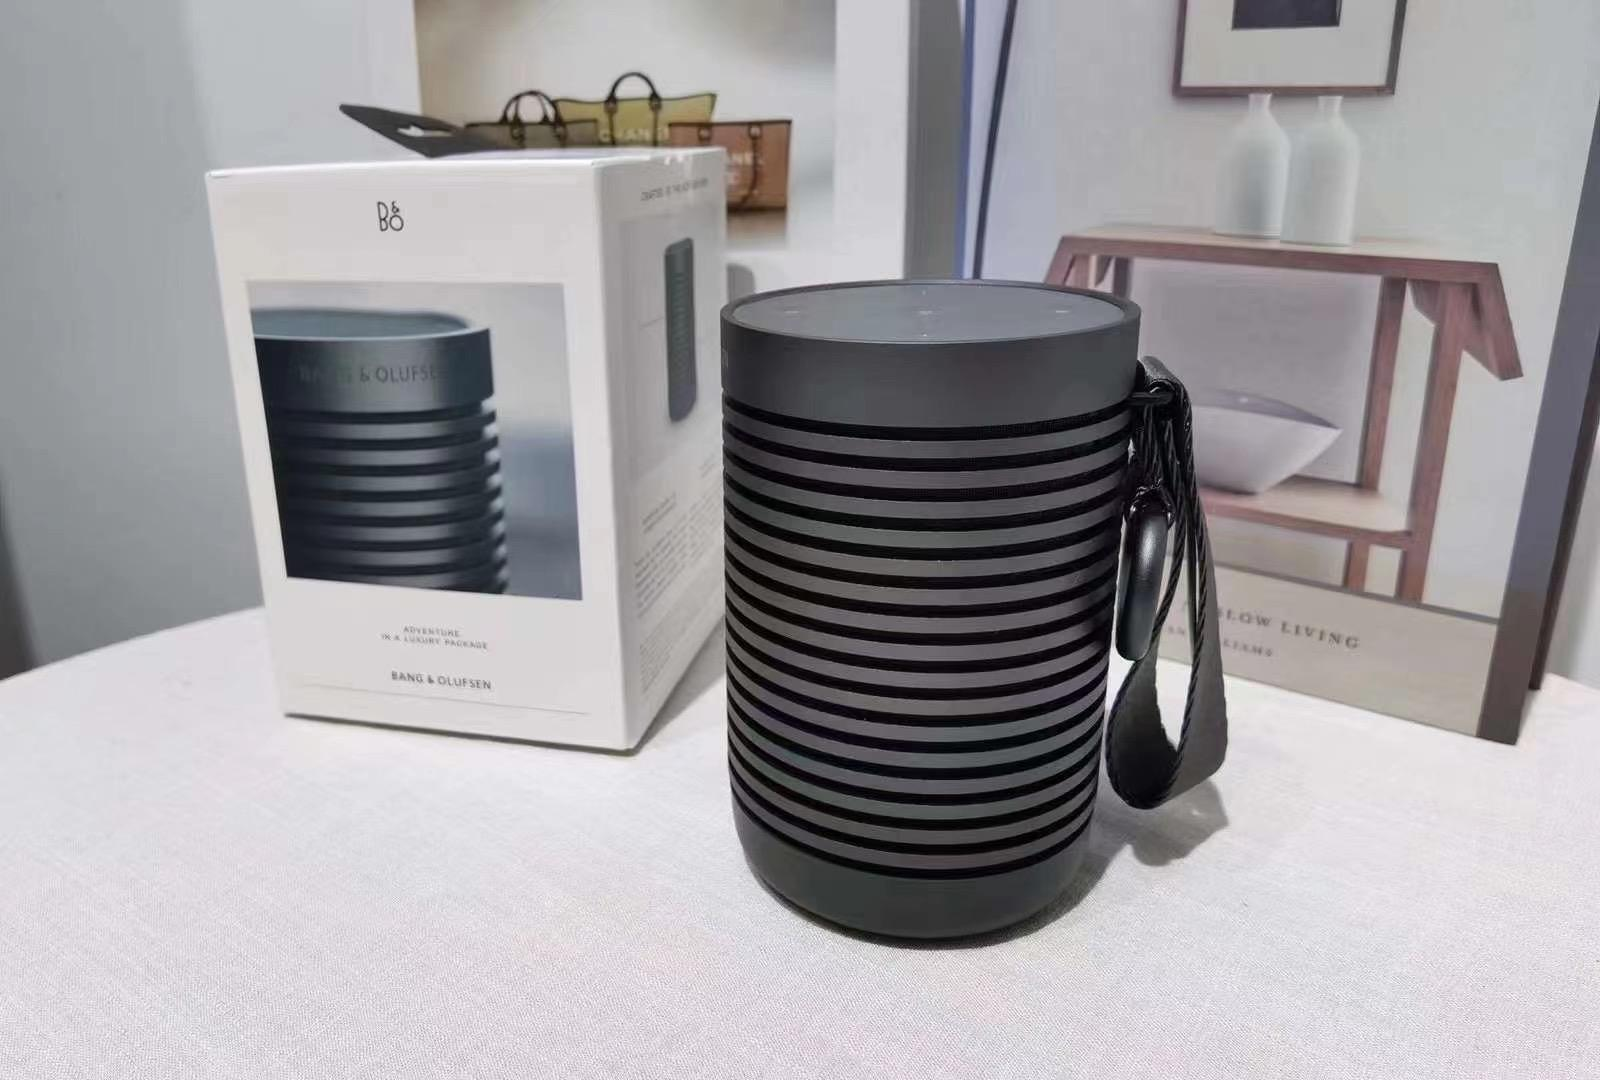 Beosound explore Speakers bang & olufsen Bluetooth Canned Speakers